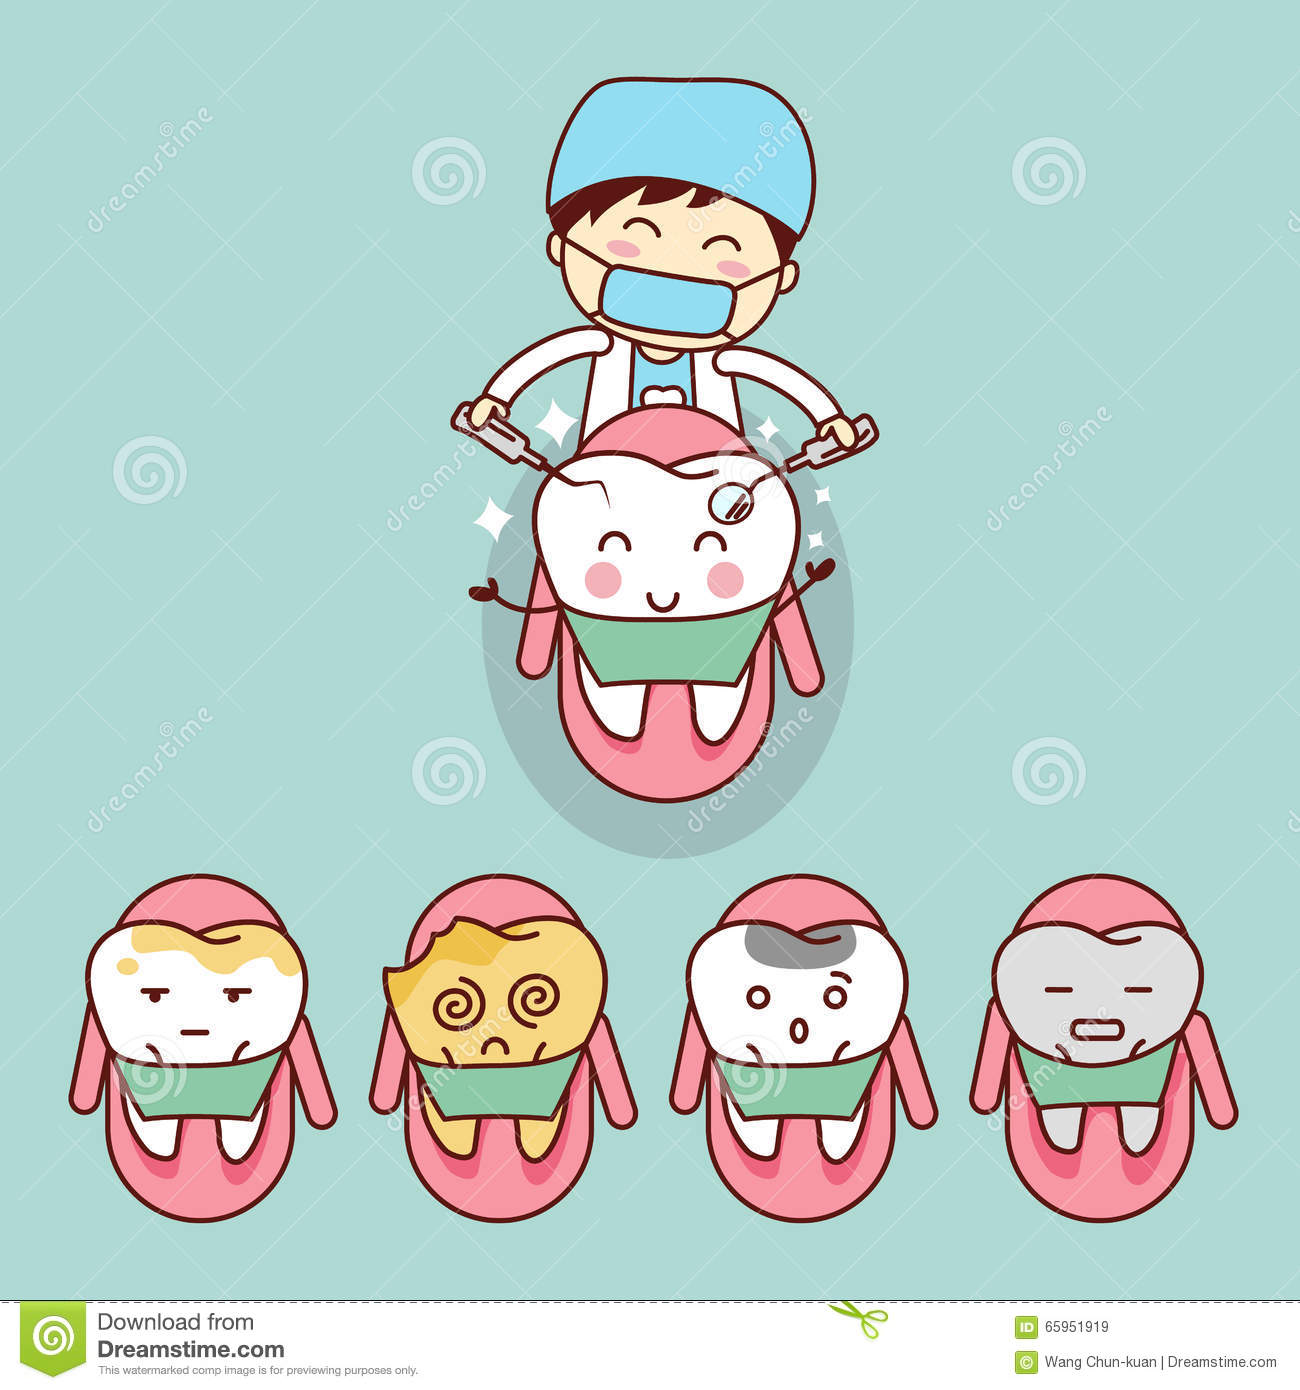 cute-cartoon-dentist-tooth-great-health-dental-care-concept-65951919.jpg